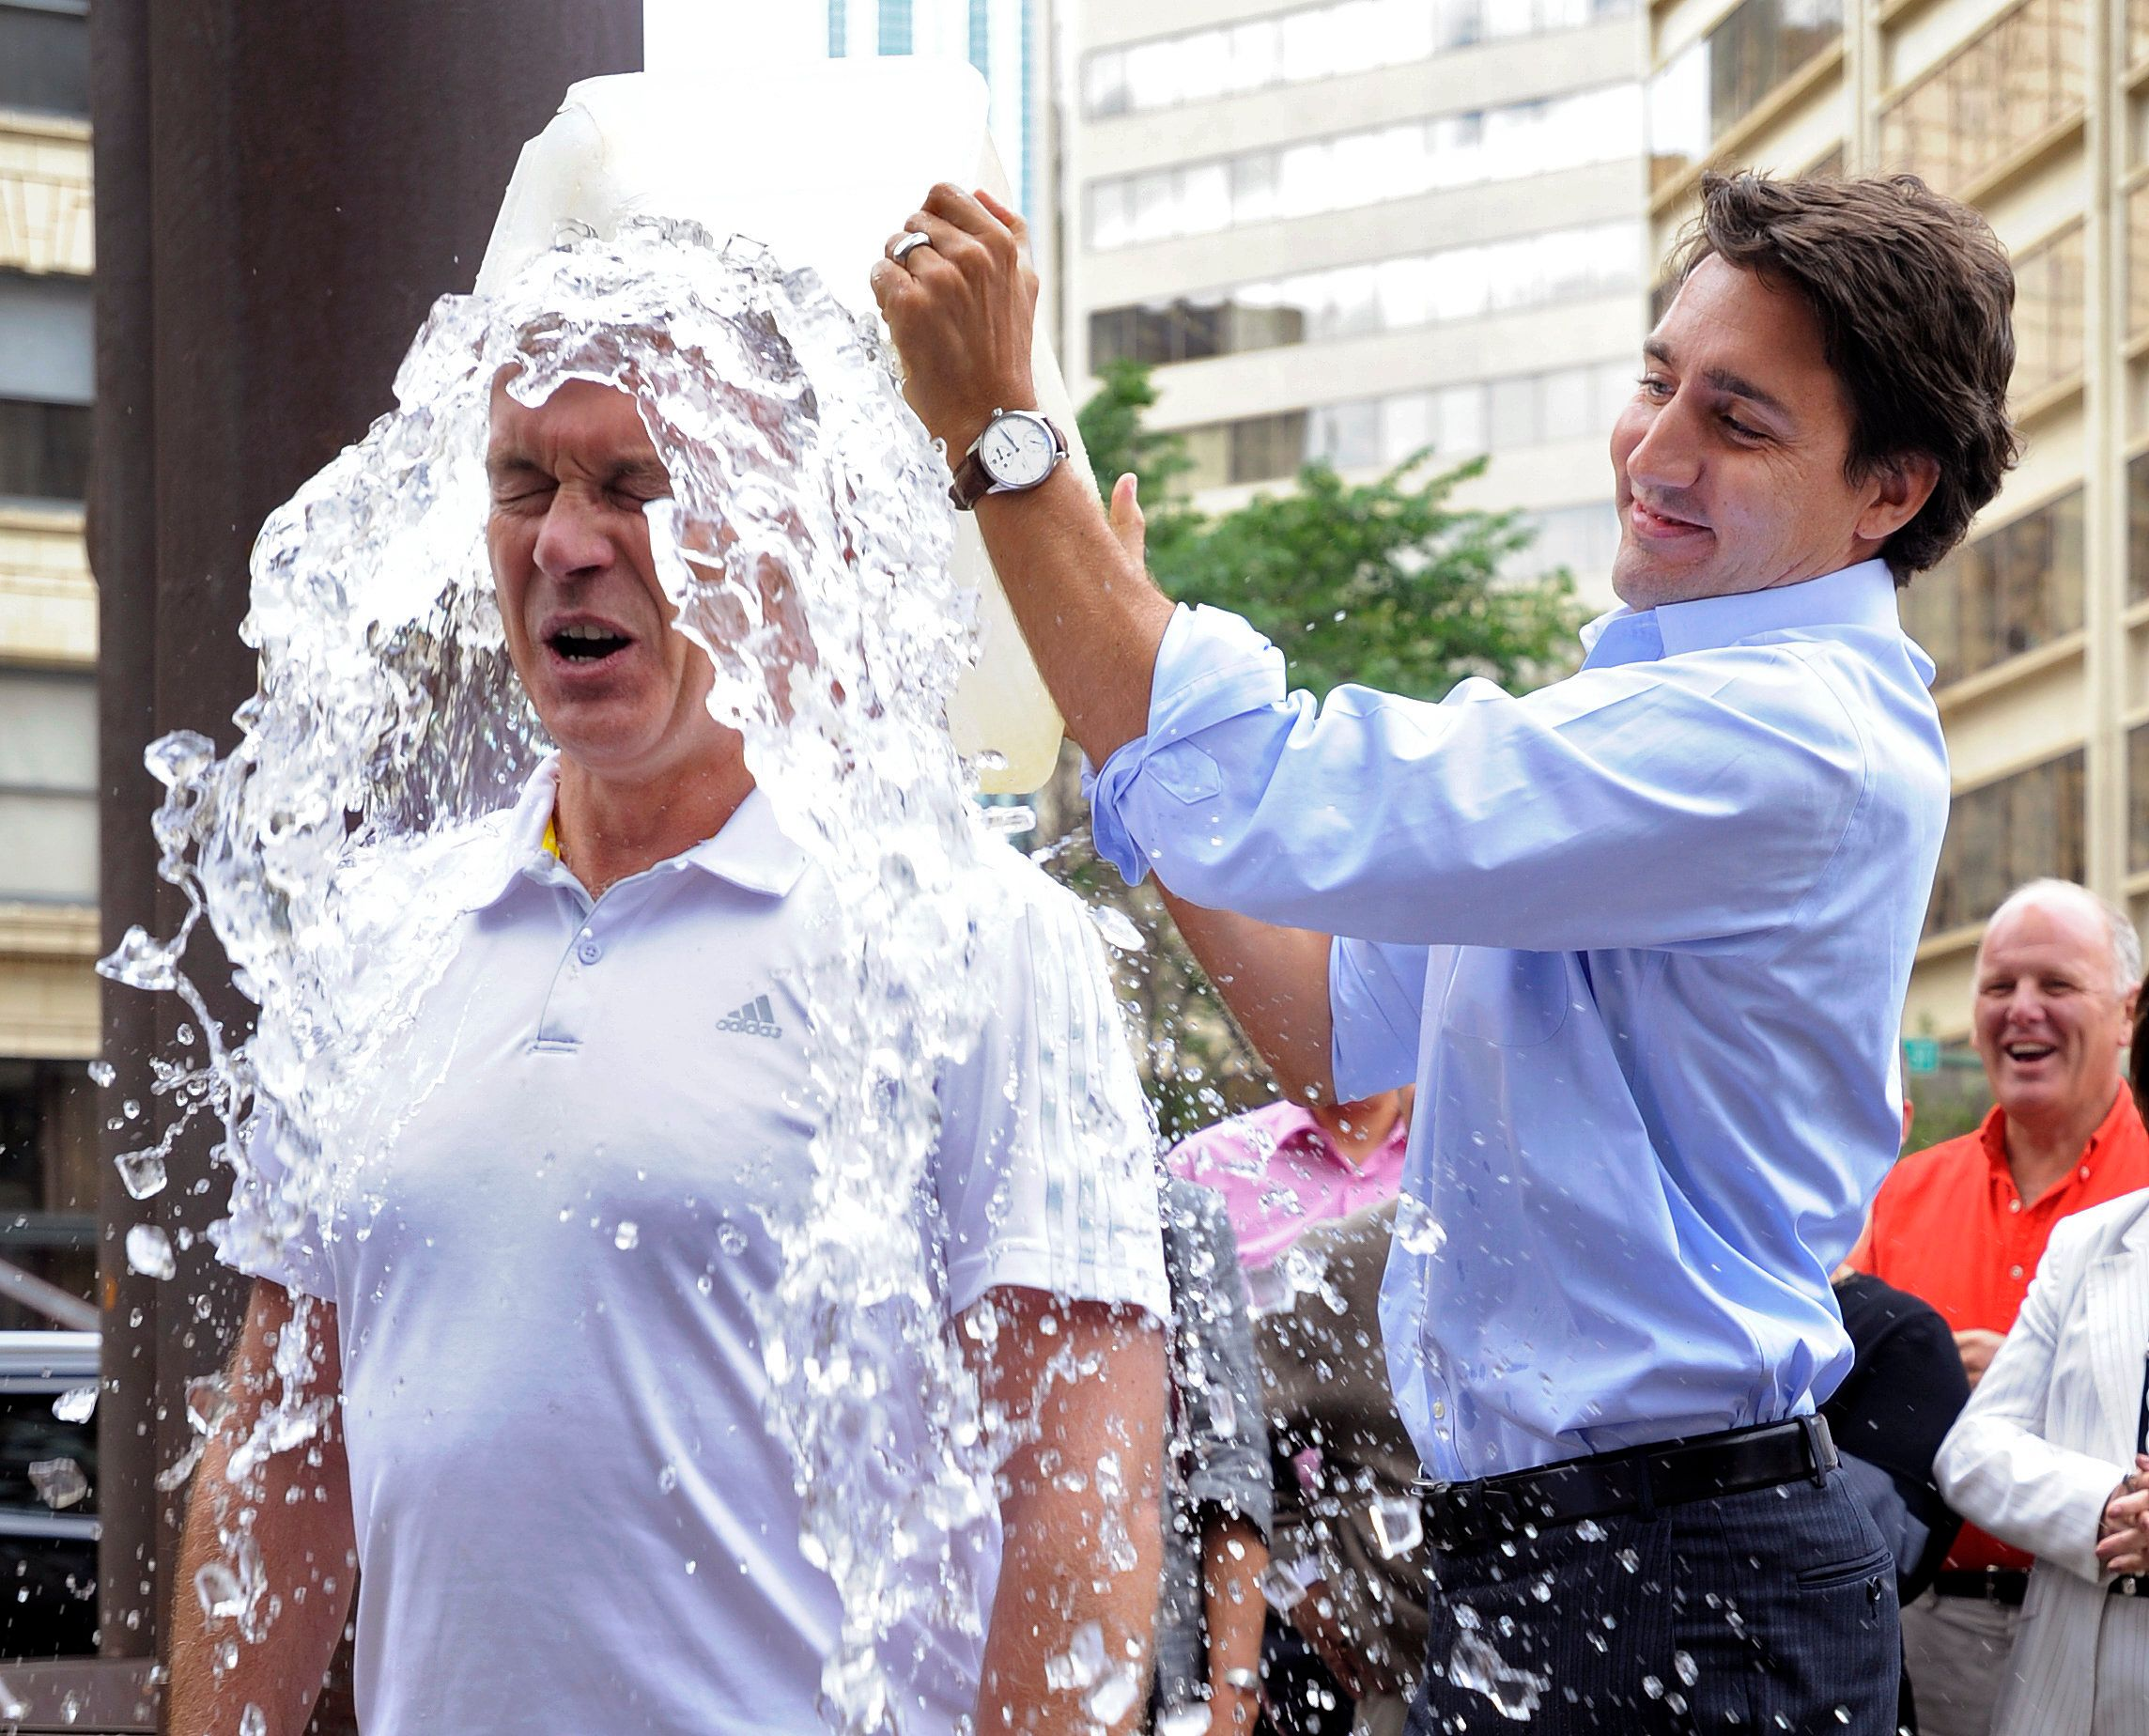 Liberal leader Justin Trudeau (R) dumps a bucket of ice water onto Liberal MP Sean Casey for the ALS ice bucket challenge during a break in the Federal Liberal summer caucus meetings in Edmonton August 19, 2014.  REUTERS/Dan Riedlhuber/File Photo